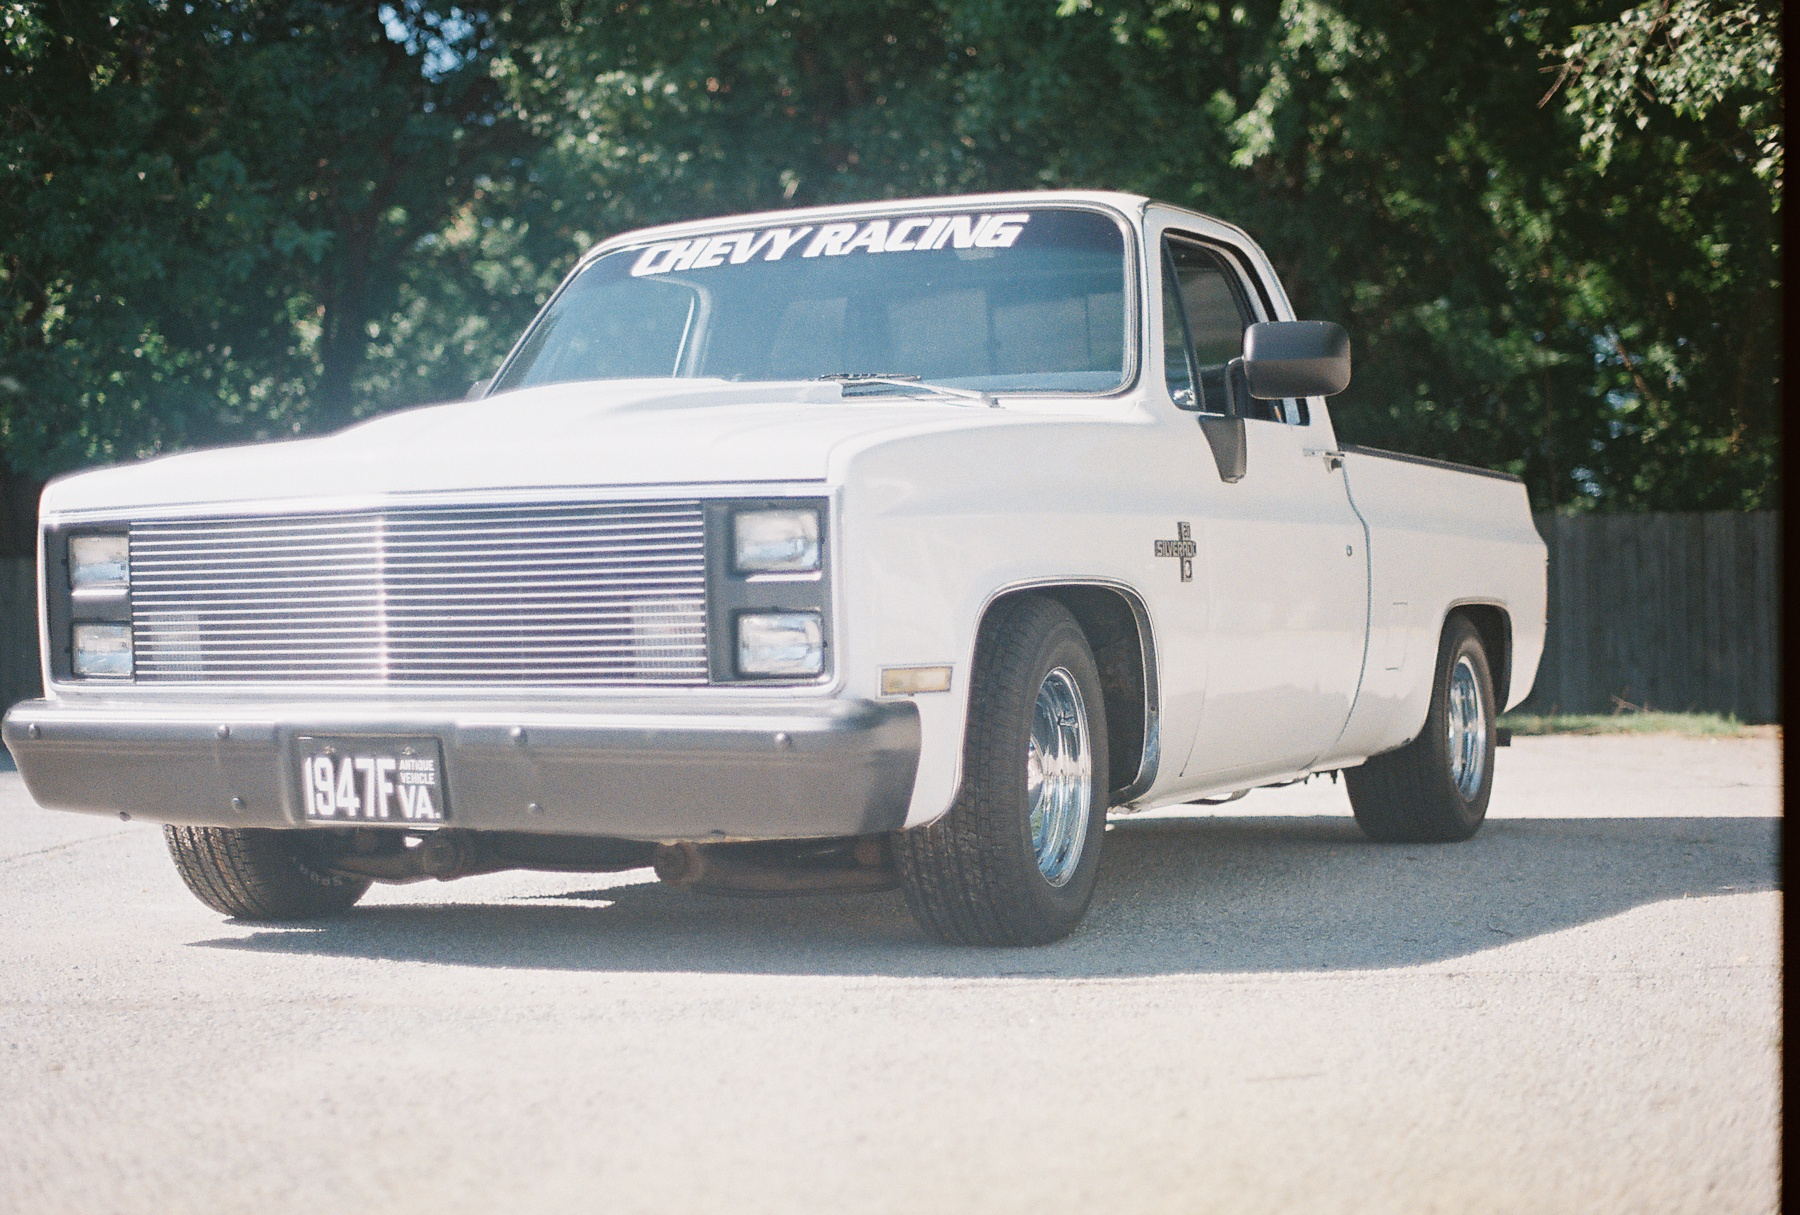 1986 Shortwide C10 (Miss Alice)